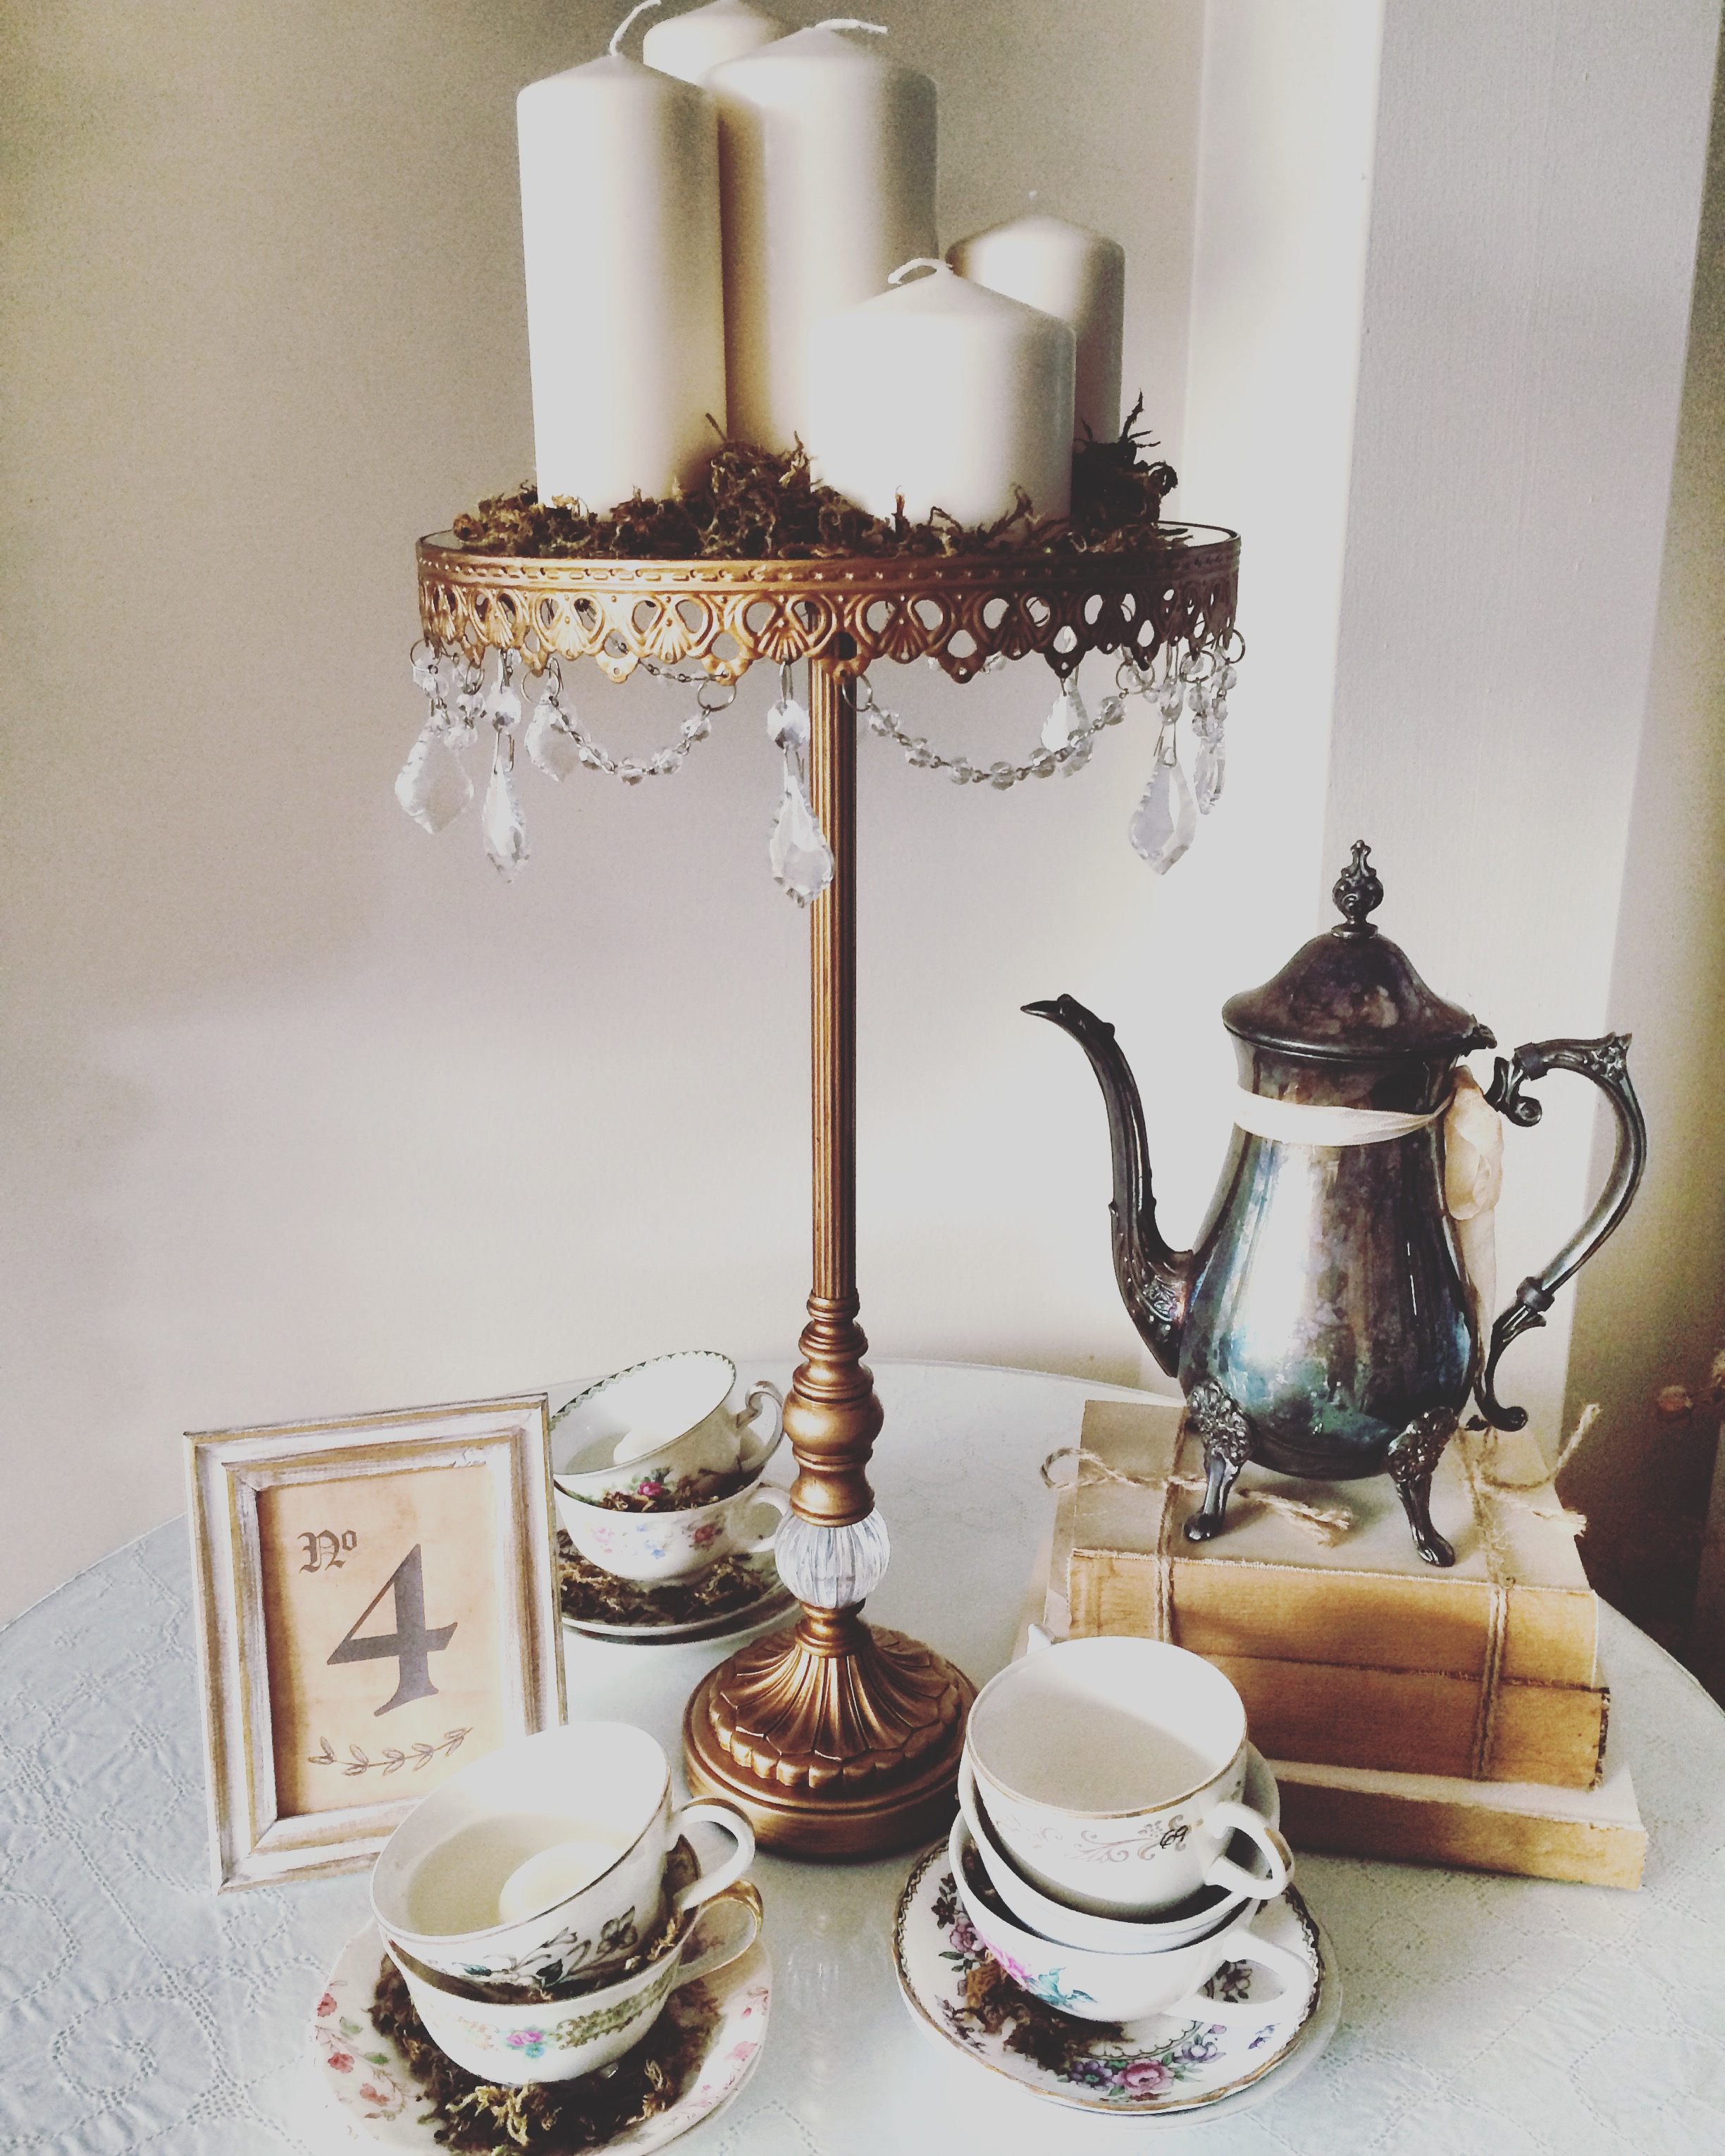 CANDLE COLLECTION (RUSTIC)